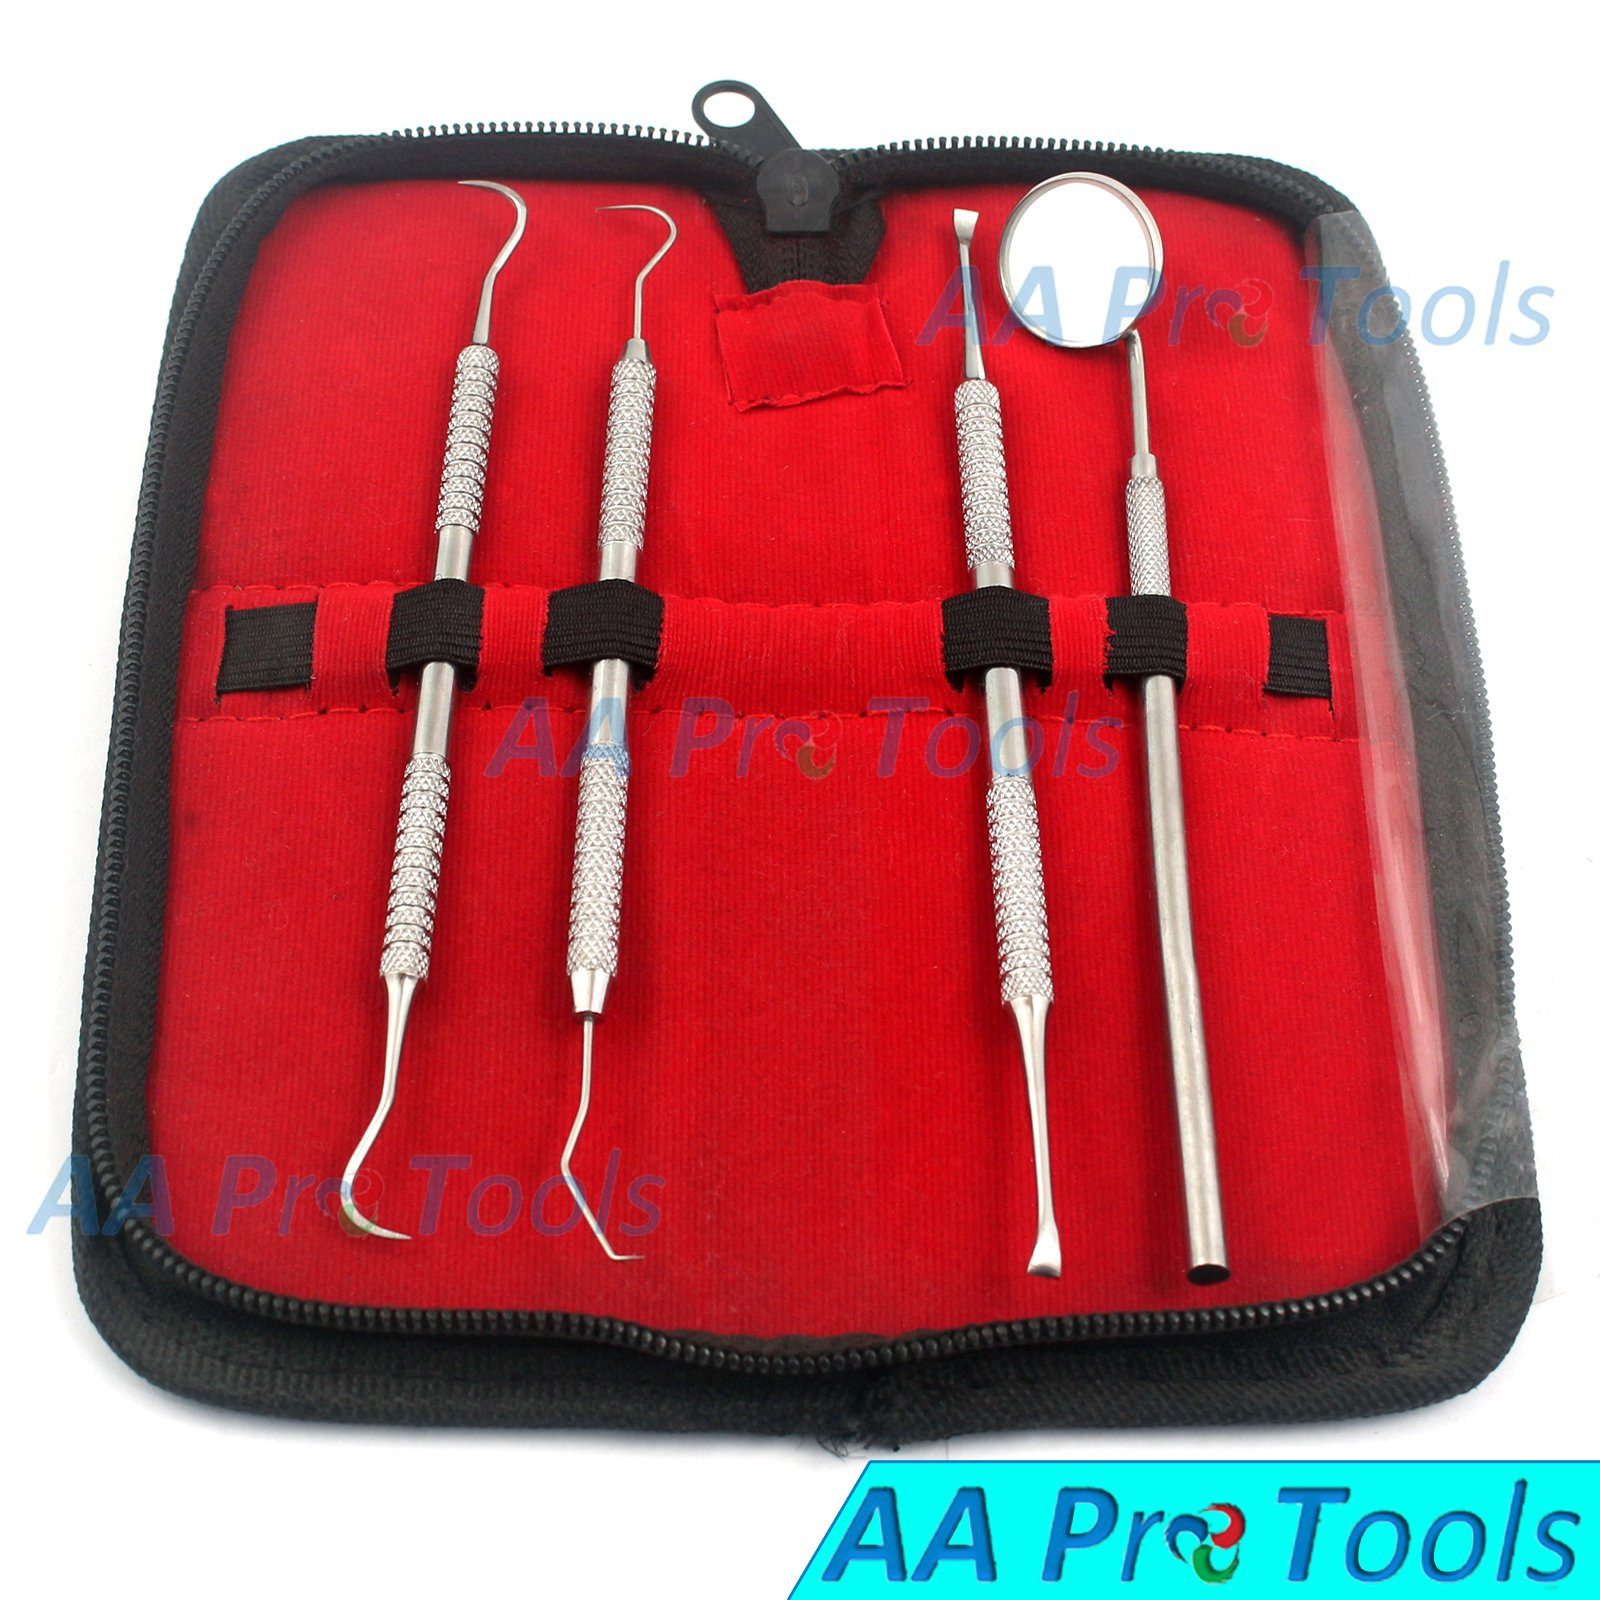 AA PRO DENTAL TOOLS KIT | STAINLESS STEEL DENTAL INSTRUMENTS & EQUIPMENT PERFECT FOR AT HOME ORAL HYGIENE & CARE - SET INCLUDES INSPECTION MIRROR, SICKLE SCALER, PICK AND TARTAR & PLAQUE SCRAPER